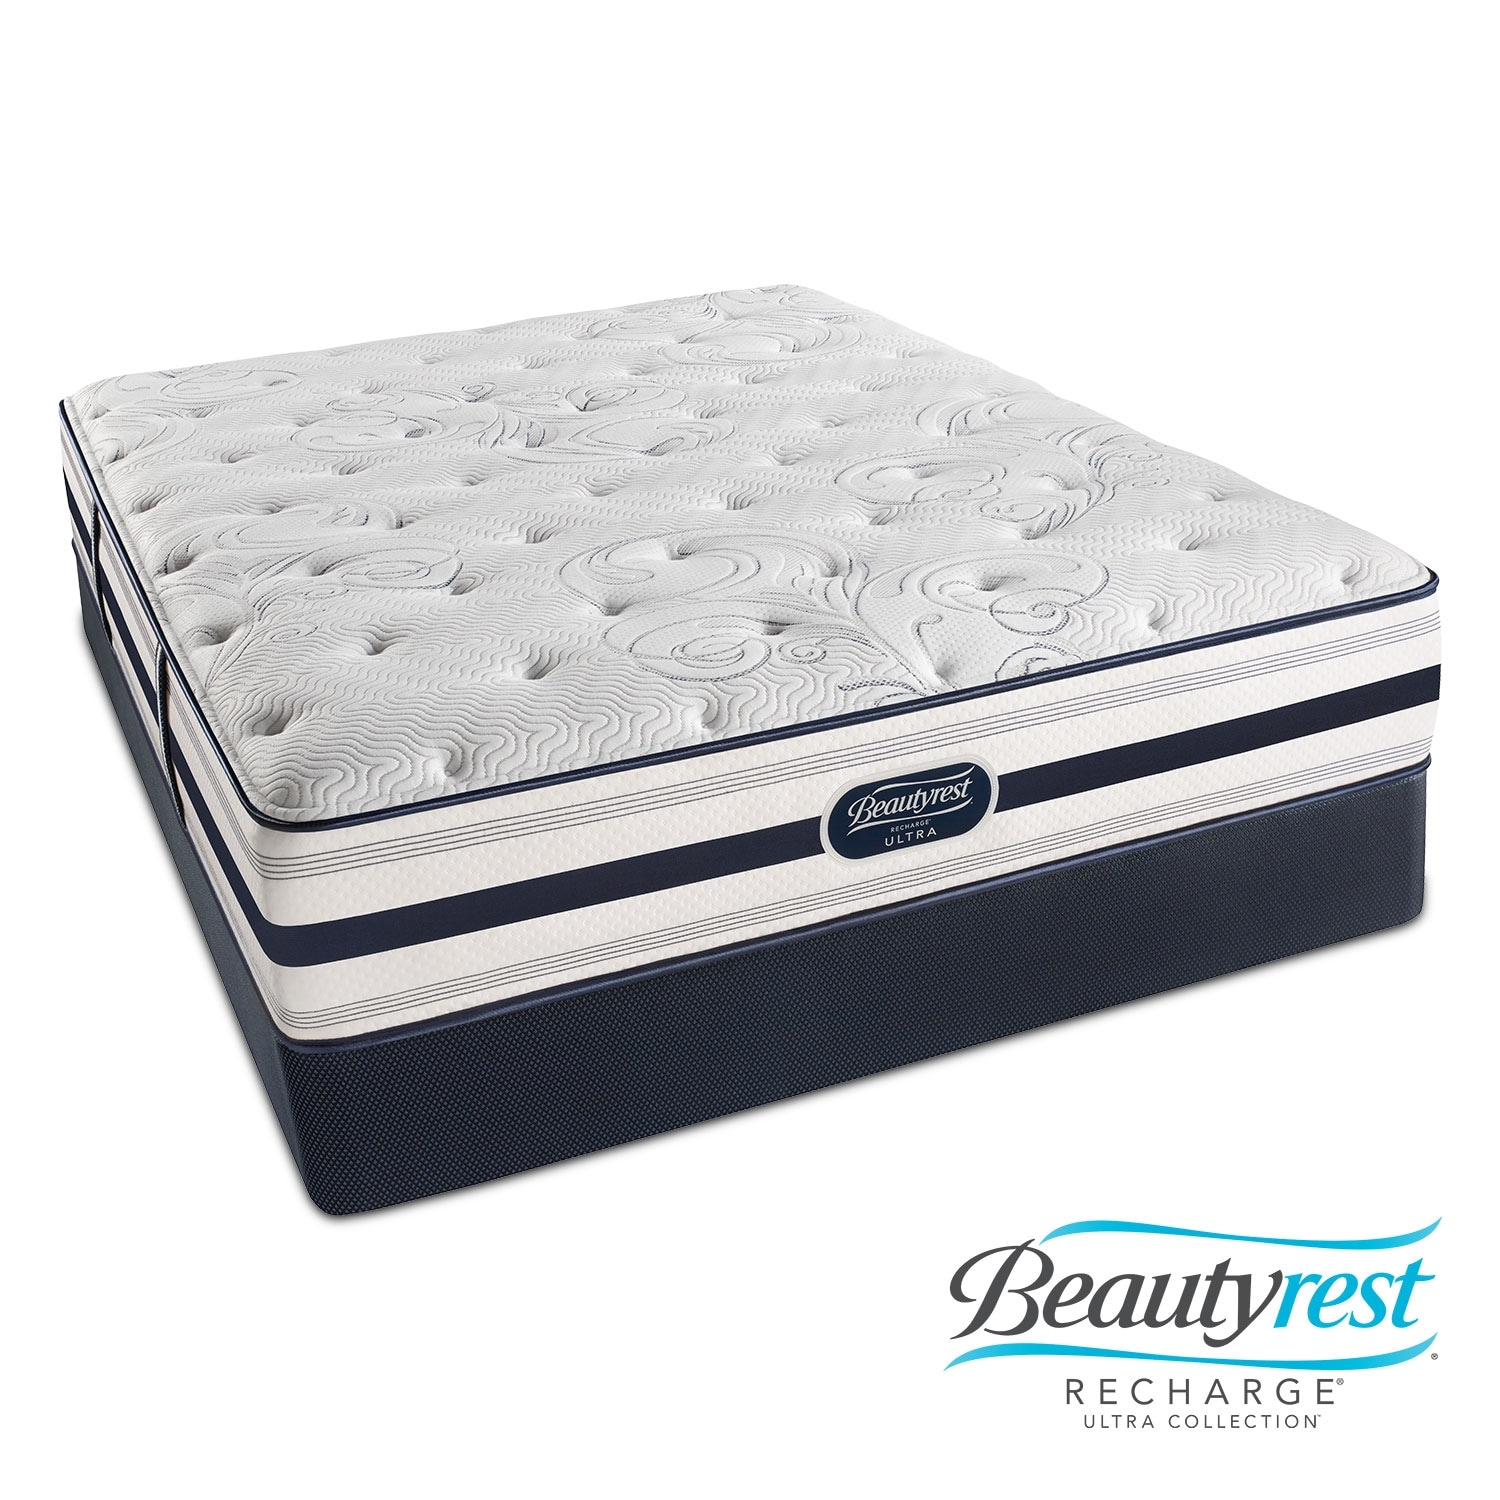 Mattresses and Bedding - Cerise Plush Queen Mattress and Split Foundation Set